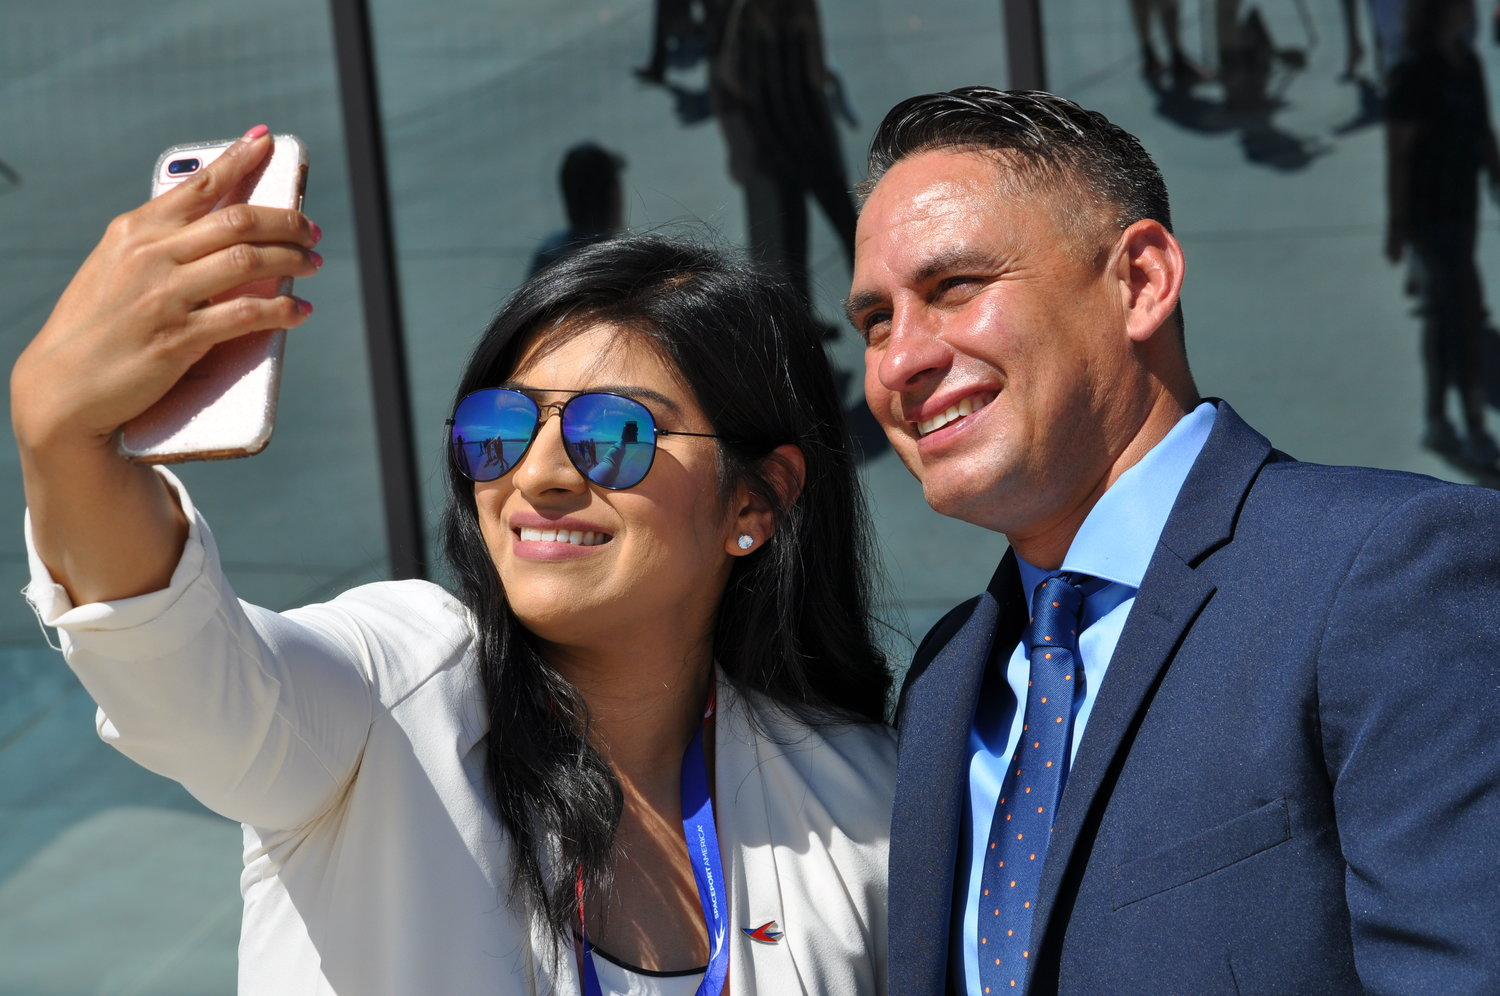 Spaceport America Authority's Rosa Banuelos and New Mexico Lt. Gov. Howie Morales pause for a joint selfie in front of the Gateway to Space Building during the Thursday, Aug. 15 introduction event.